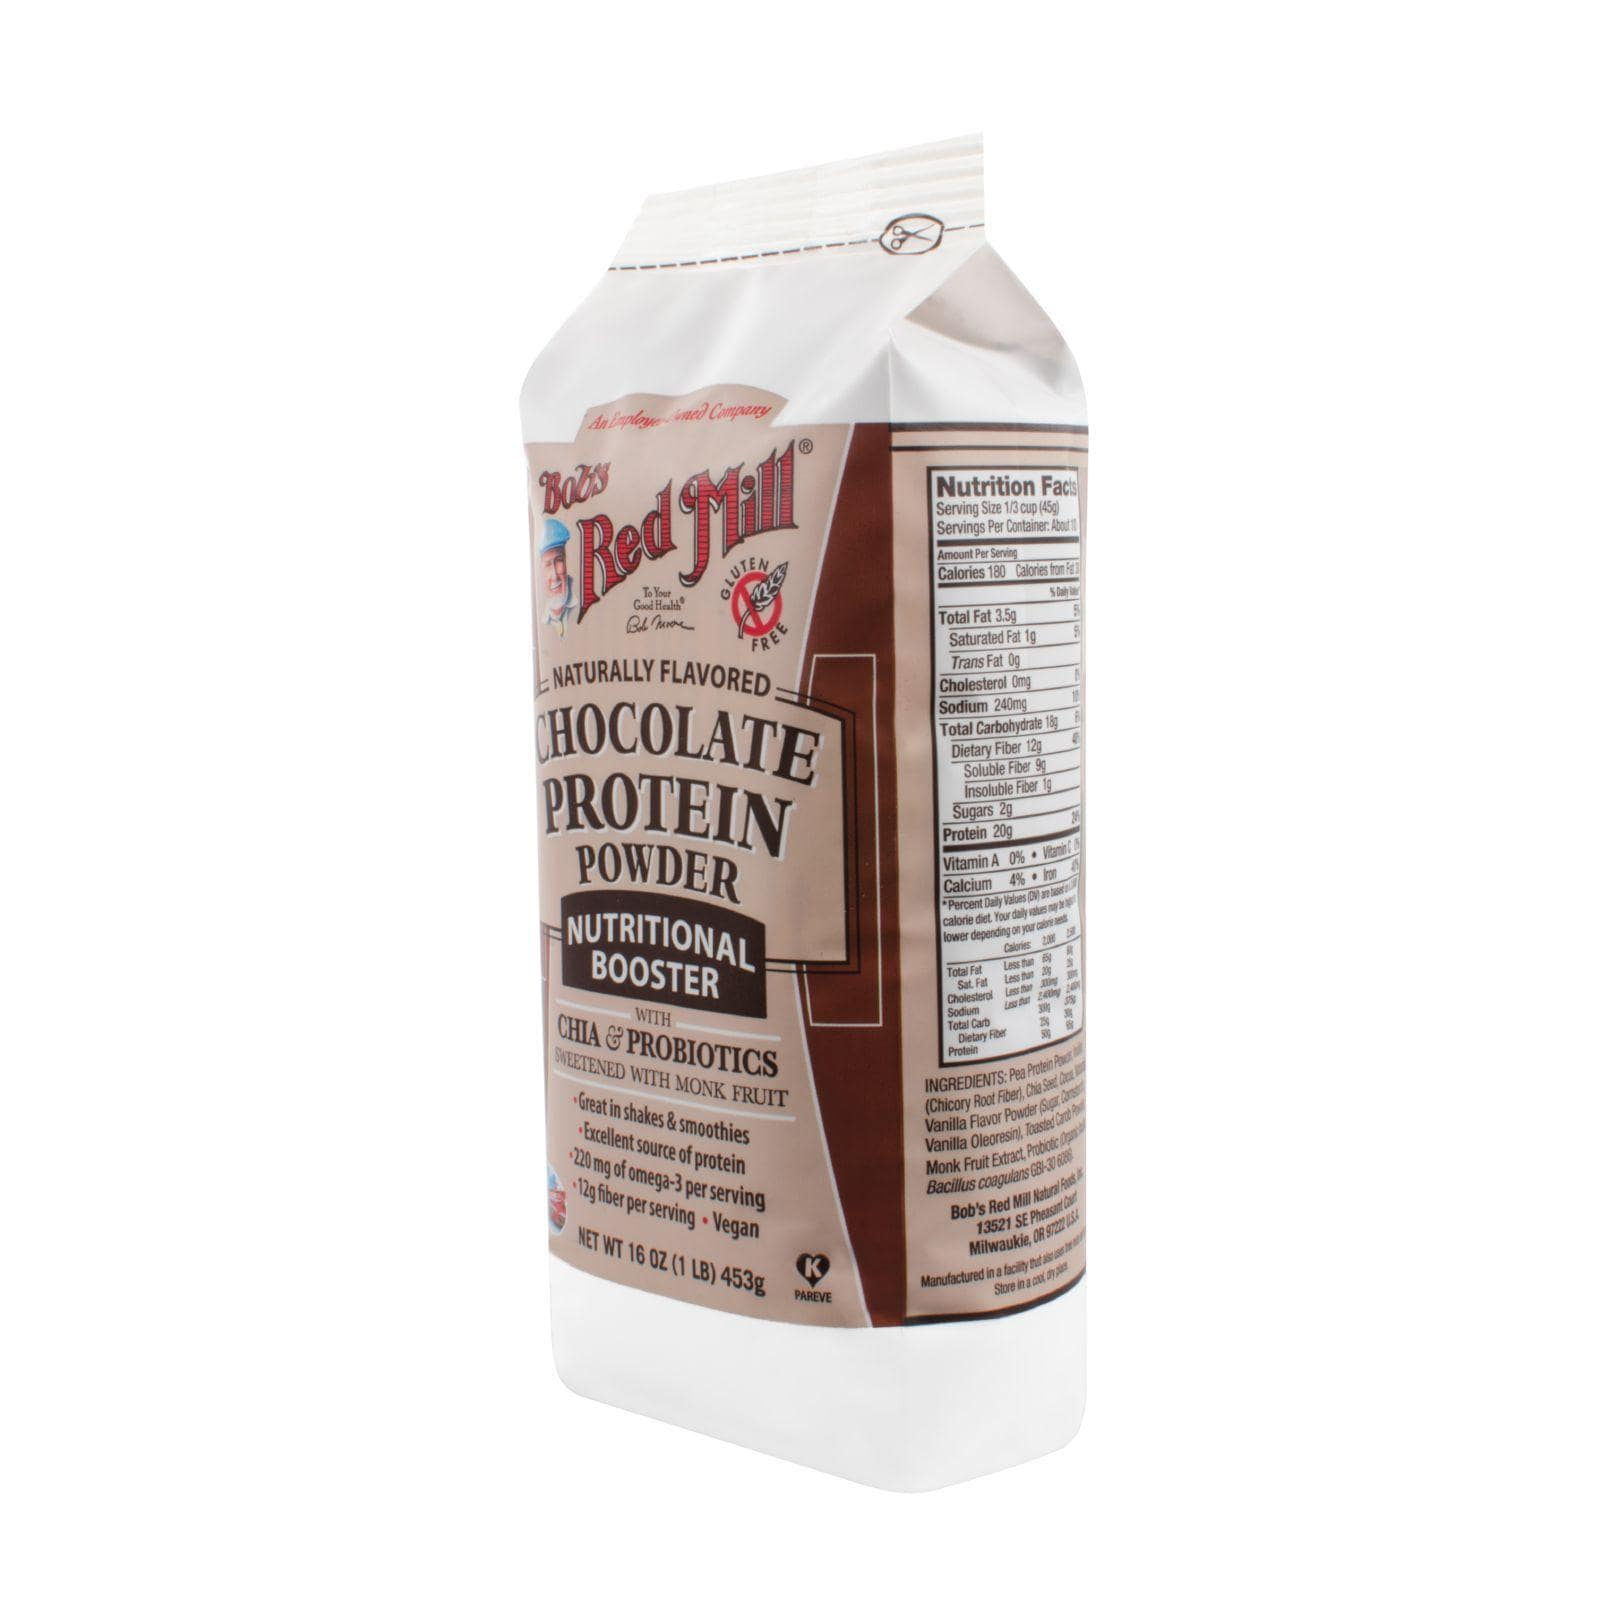 Bob's Red Mill Sports And Fitness Bob's Red Mill Chocolate Protein Powder Nutritional Booster - 16 Oz - Case Of 4